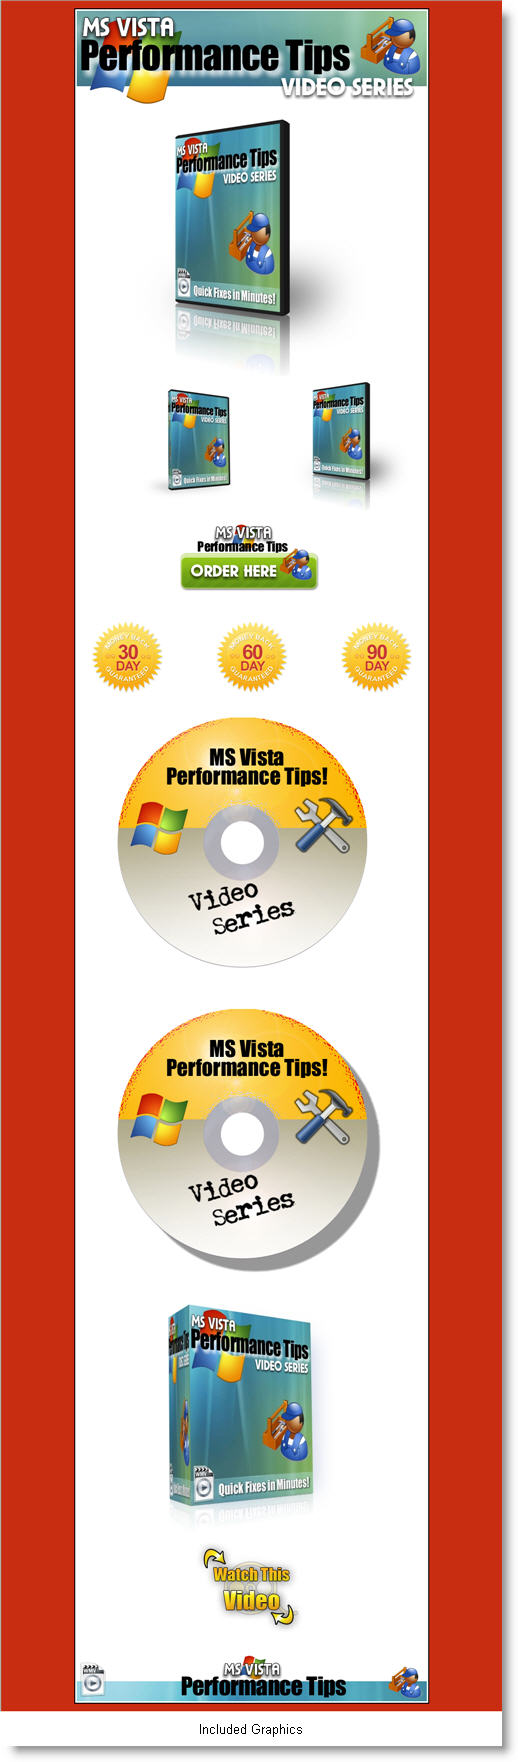 8 Brand New Reseller Products - MS Vista Performance Tips screenshot